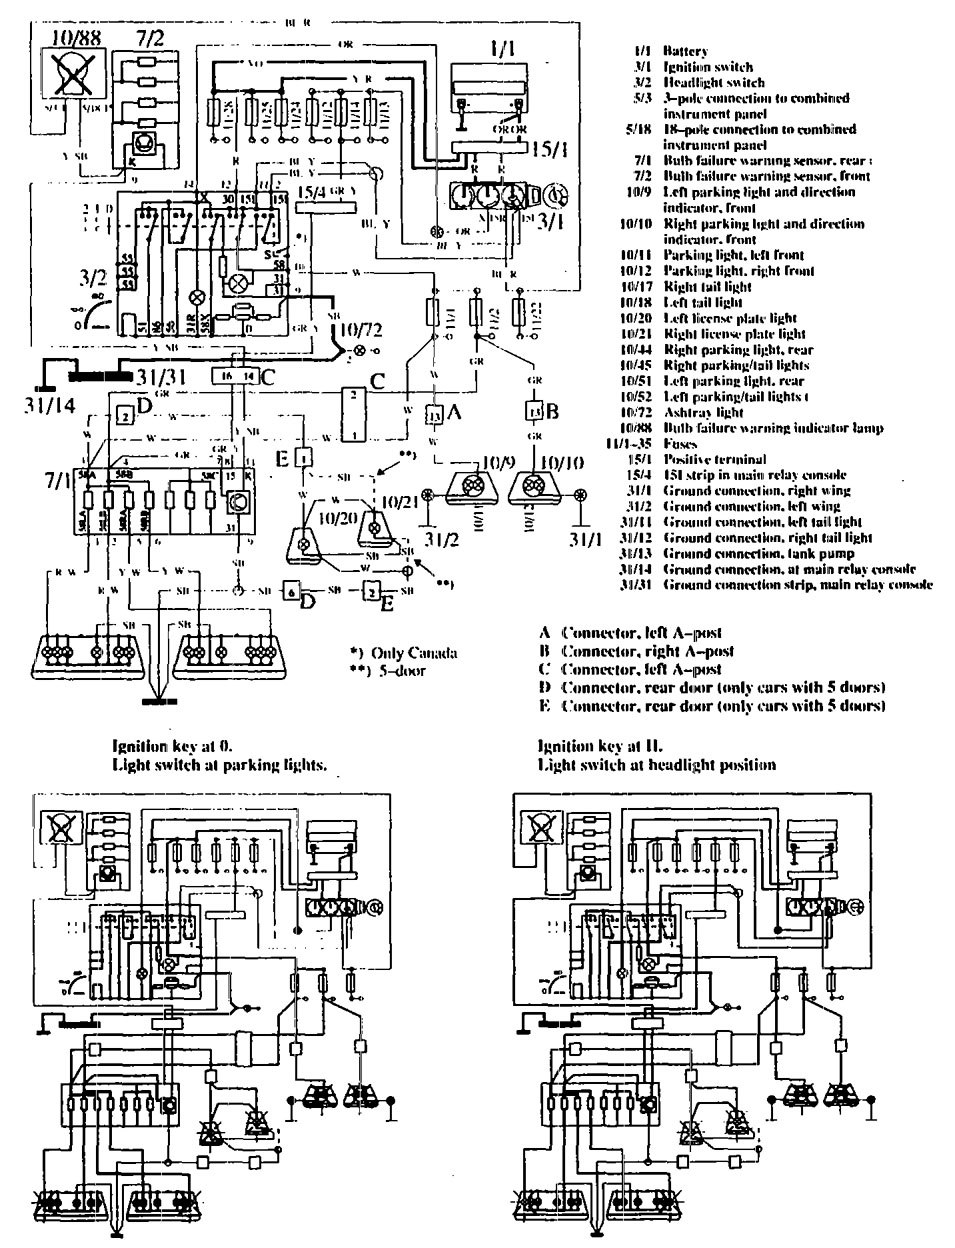 VOLVO 760 WIRING DIAGRAM - Auto Electrical Wiring Diagram on 03 f150 fuse, 03 f150 suspension, 03 f150 starter, 03 f150 frame, 03 f150 wiper motor, 03 f150 accessories, 03 f150 6 inch lift, 03 f150 engine, 03 f150 ignition switch, 03 f150 parts diagram,